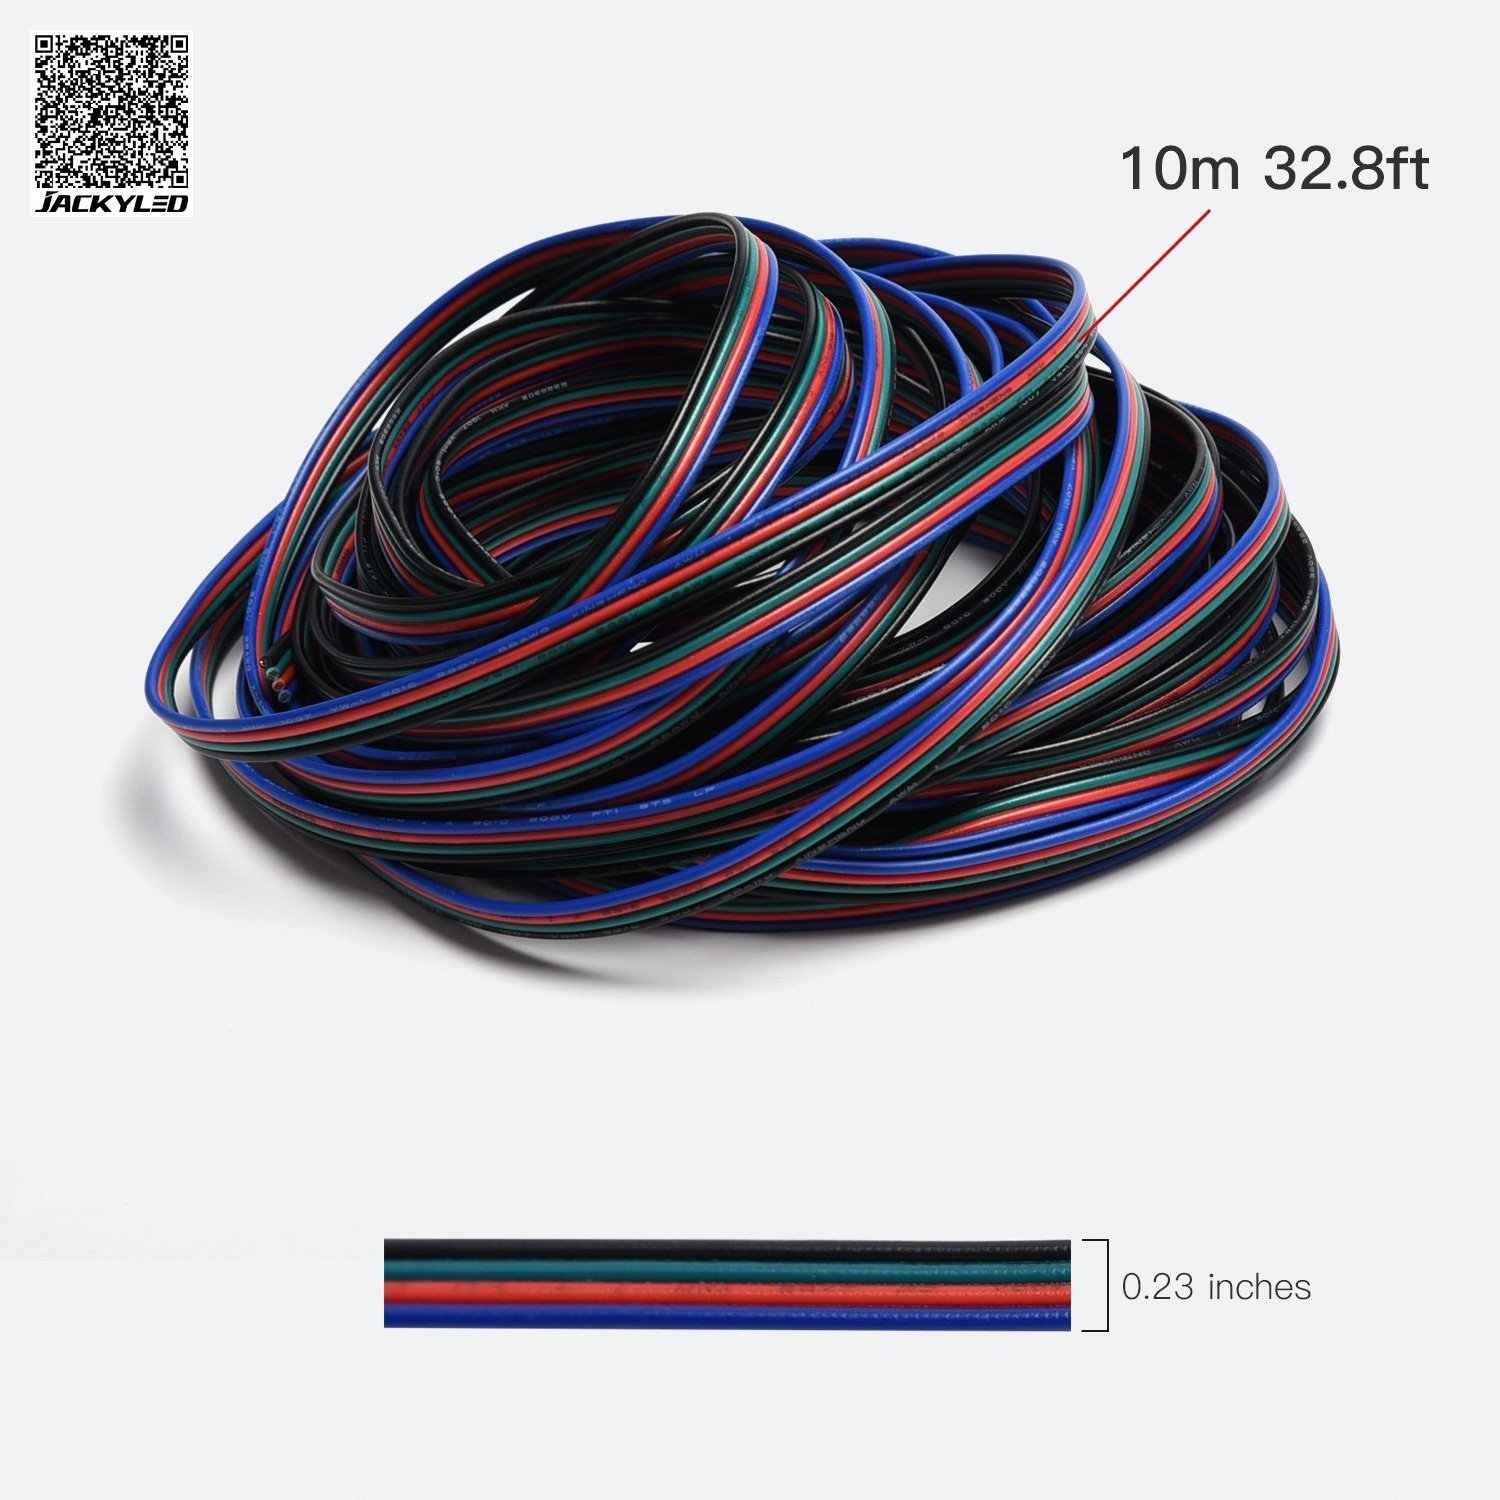 JACKYLED RGB Cable 4 pins Extension Cord Cable for 5050 3528 LED Light Strip 10m 32.8ft LED Splitter connectors kit 4 Color